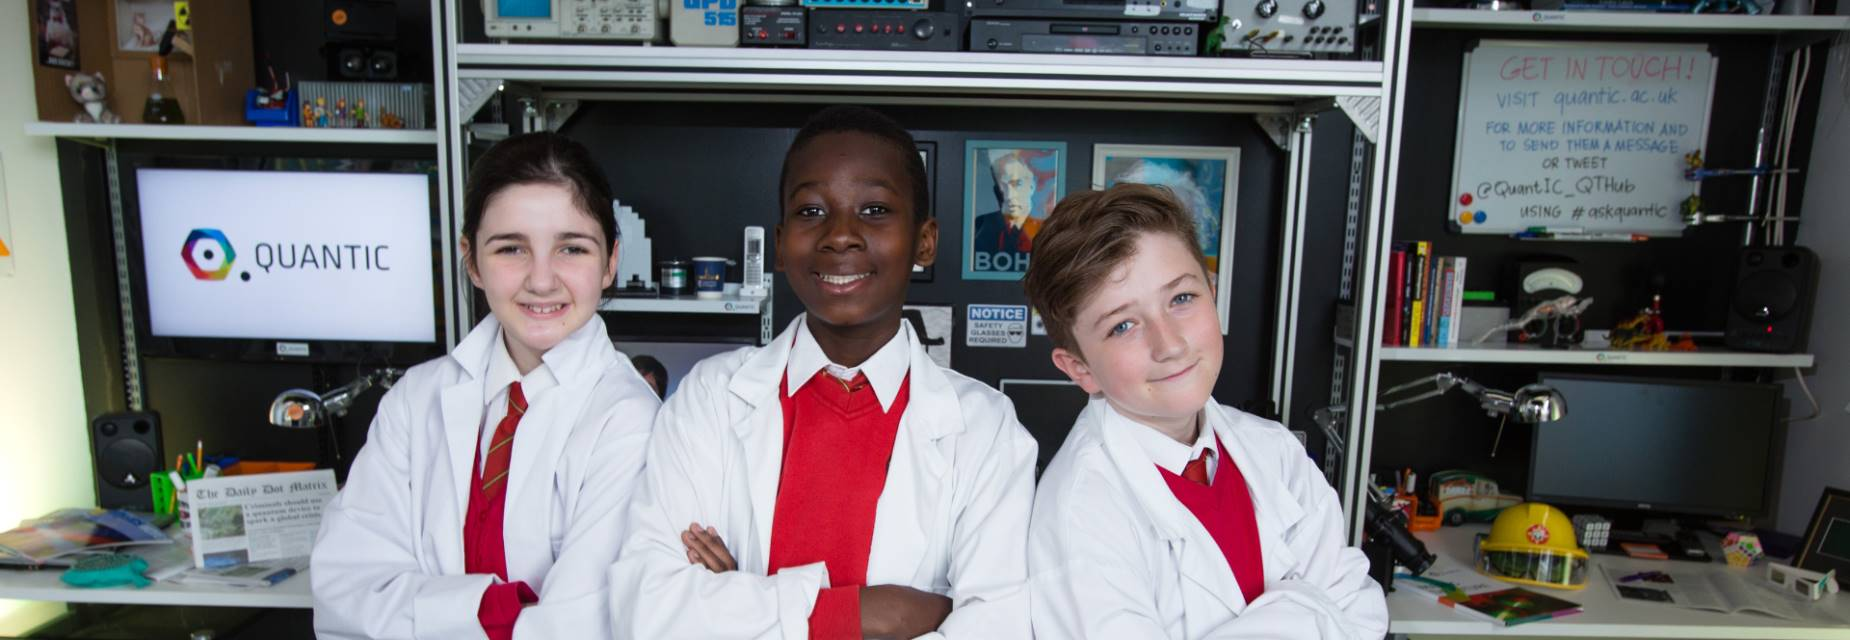 School pupils stand in front of an array of monitors and technical apparatus